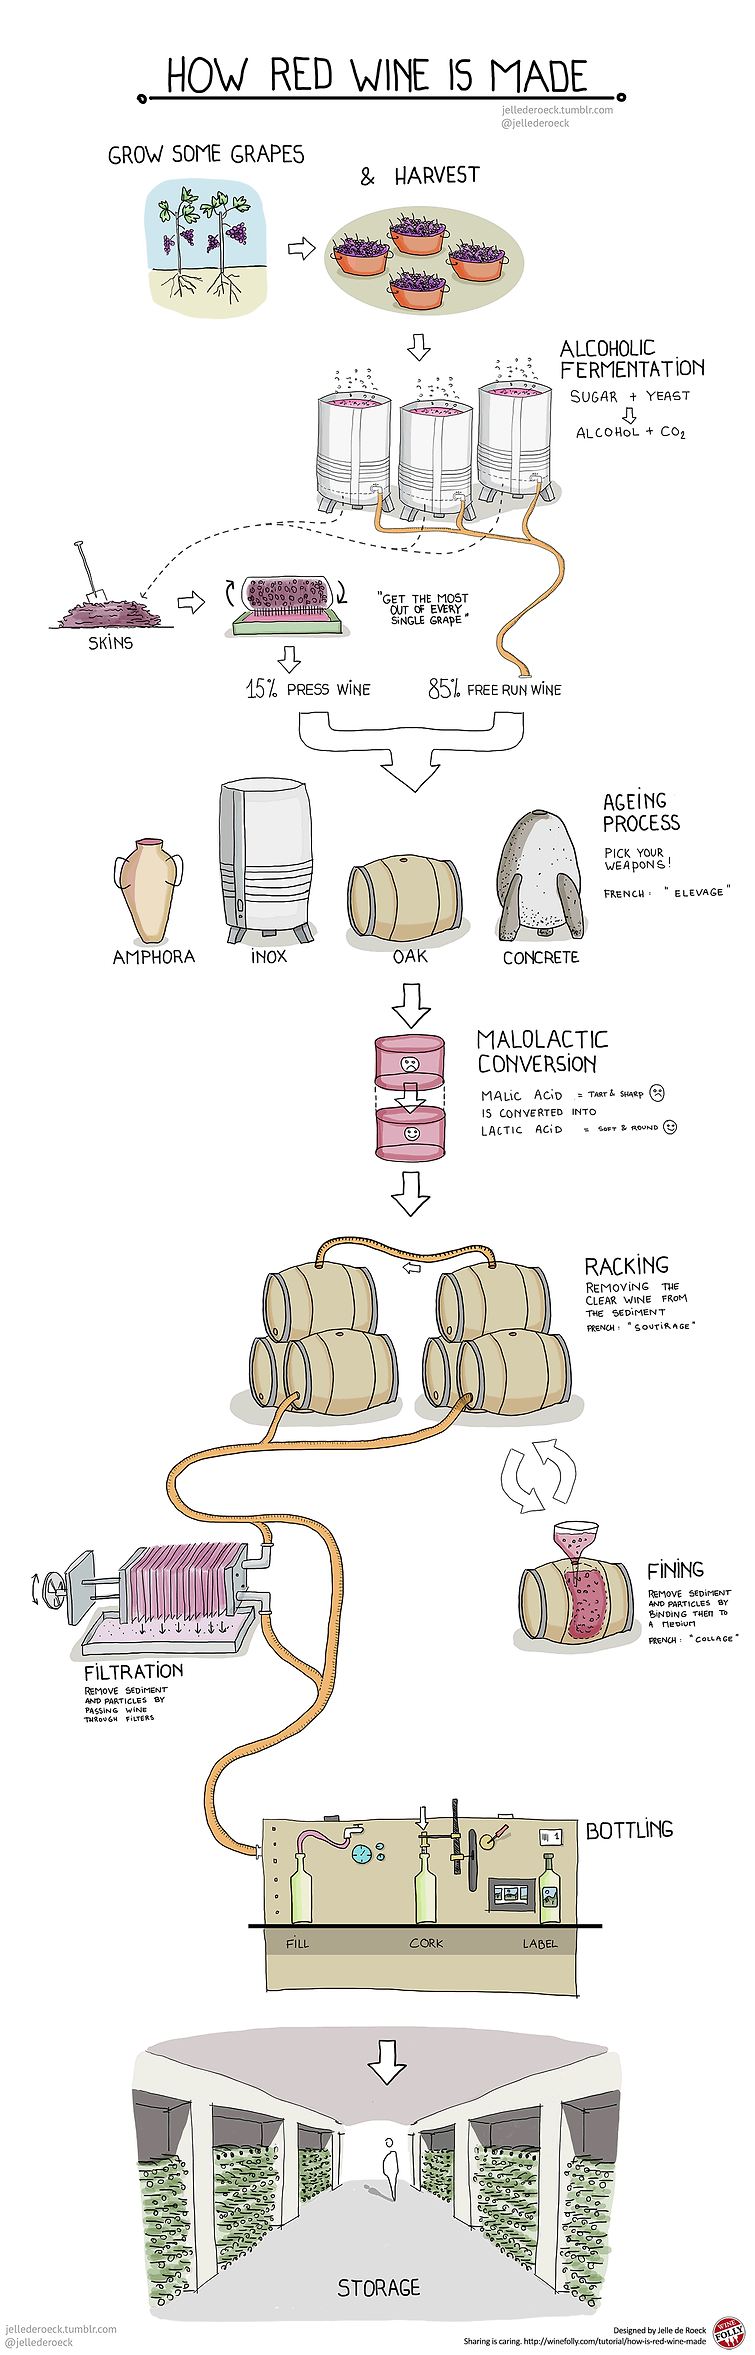 how-is-red-wine-made.png